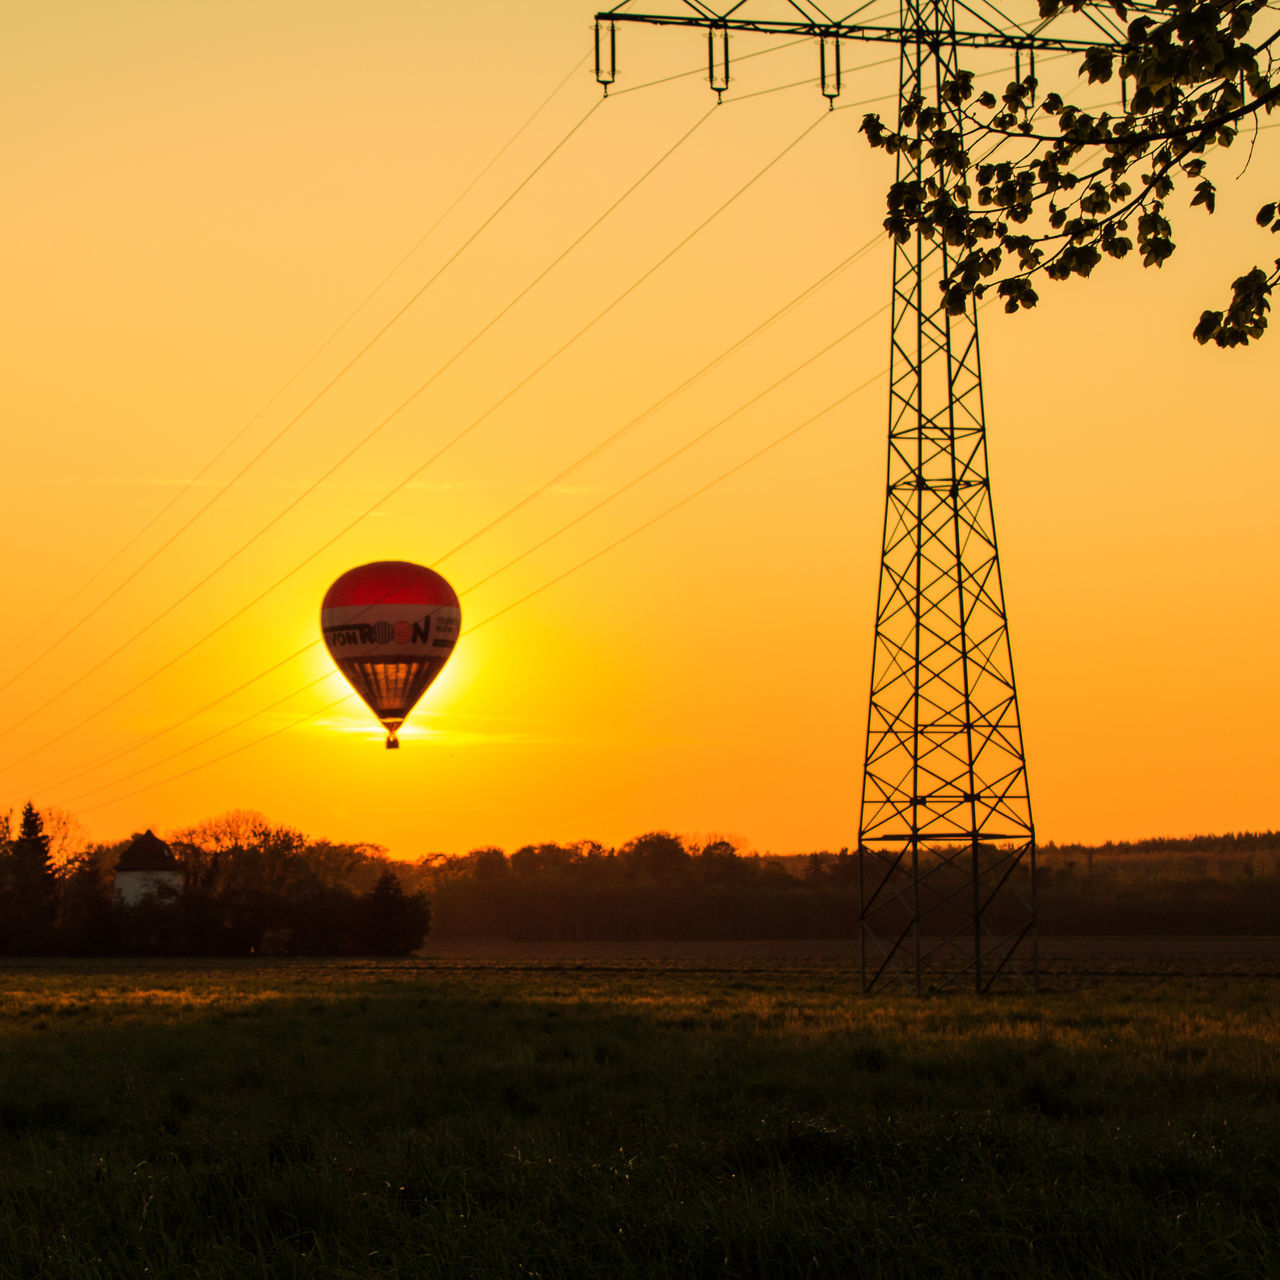 sunset, hot air balloon, field, sky, silhouette, electricity pylon, nature, tree, clear sky, outdoors, landscape, beauty in nature, no people, grass, day